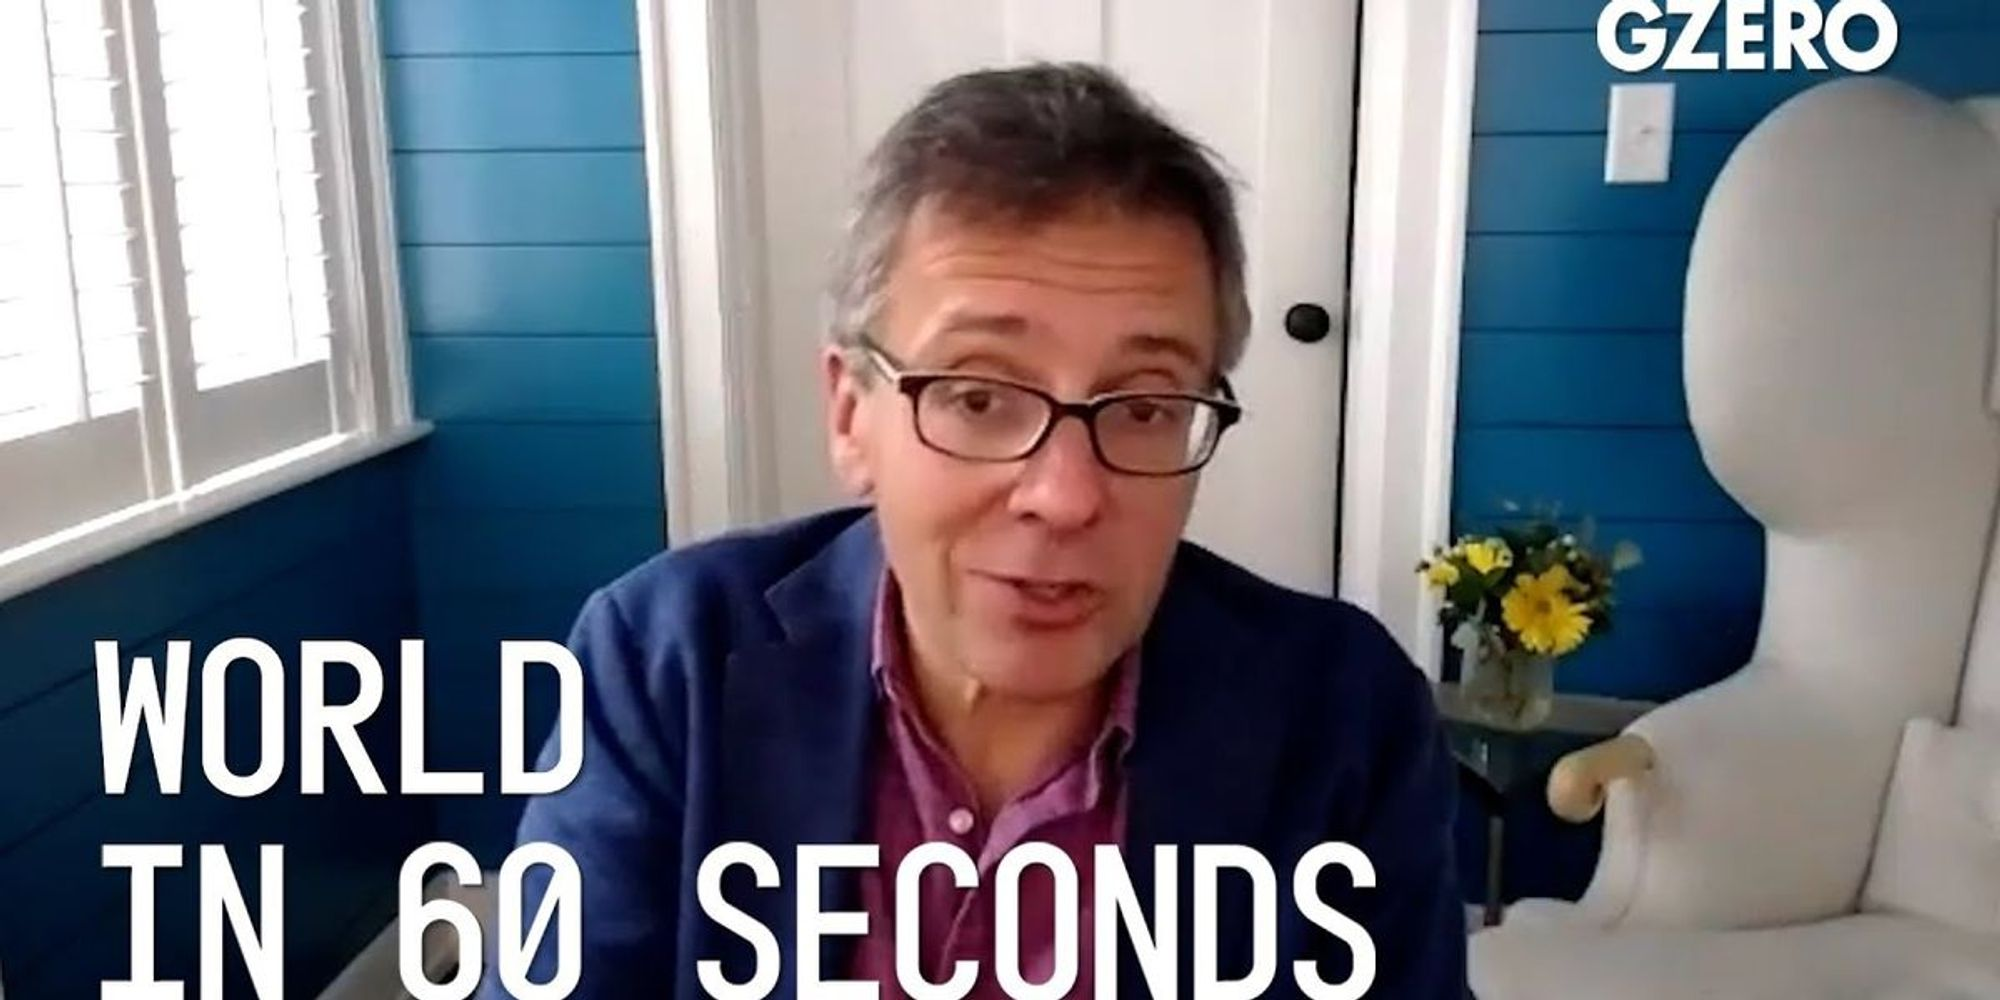 News In 60 Seconds - cover